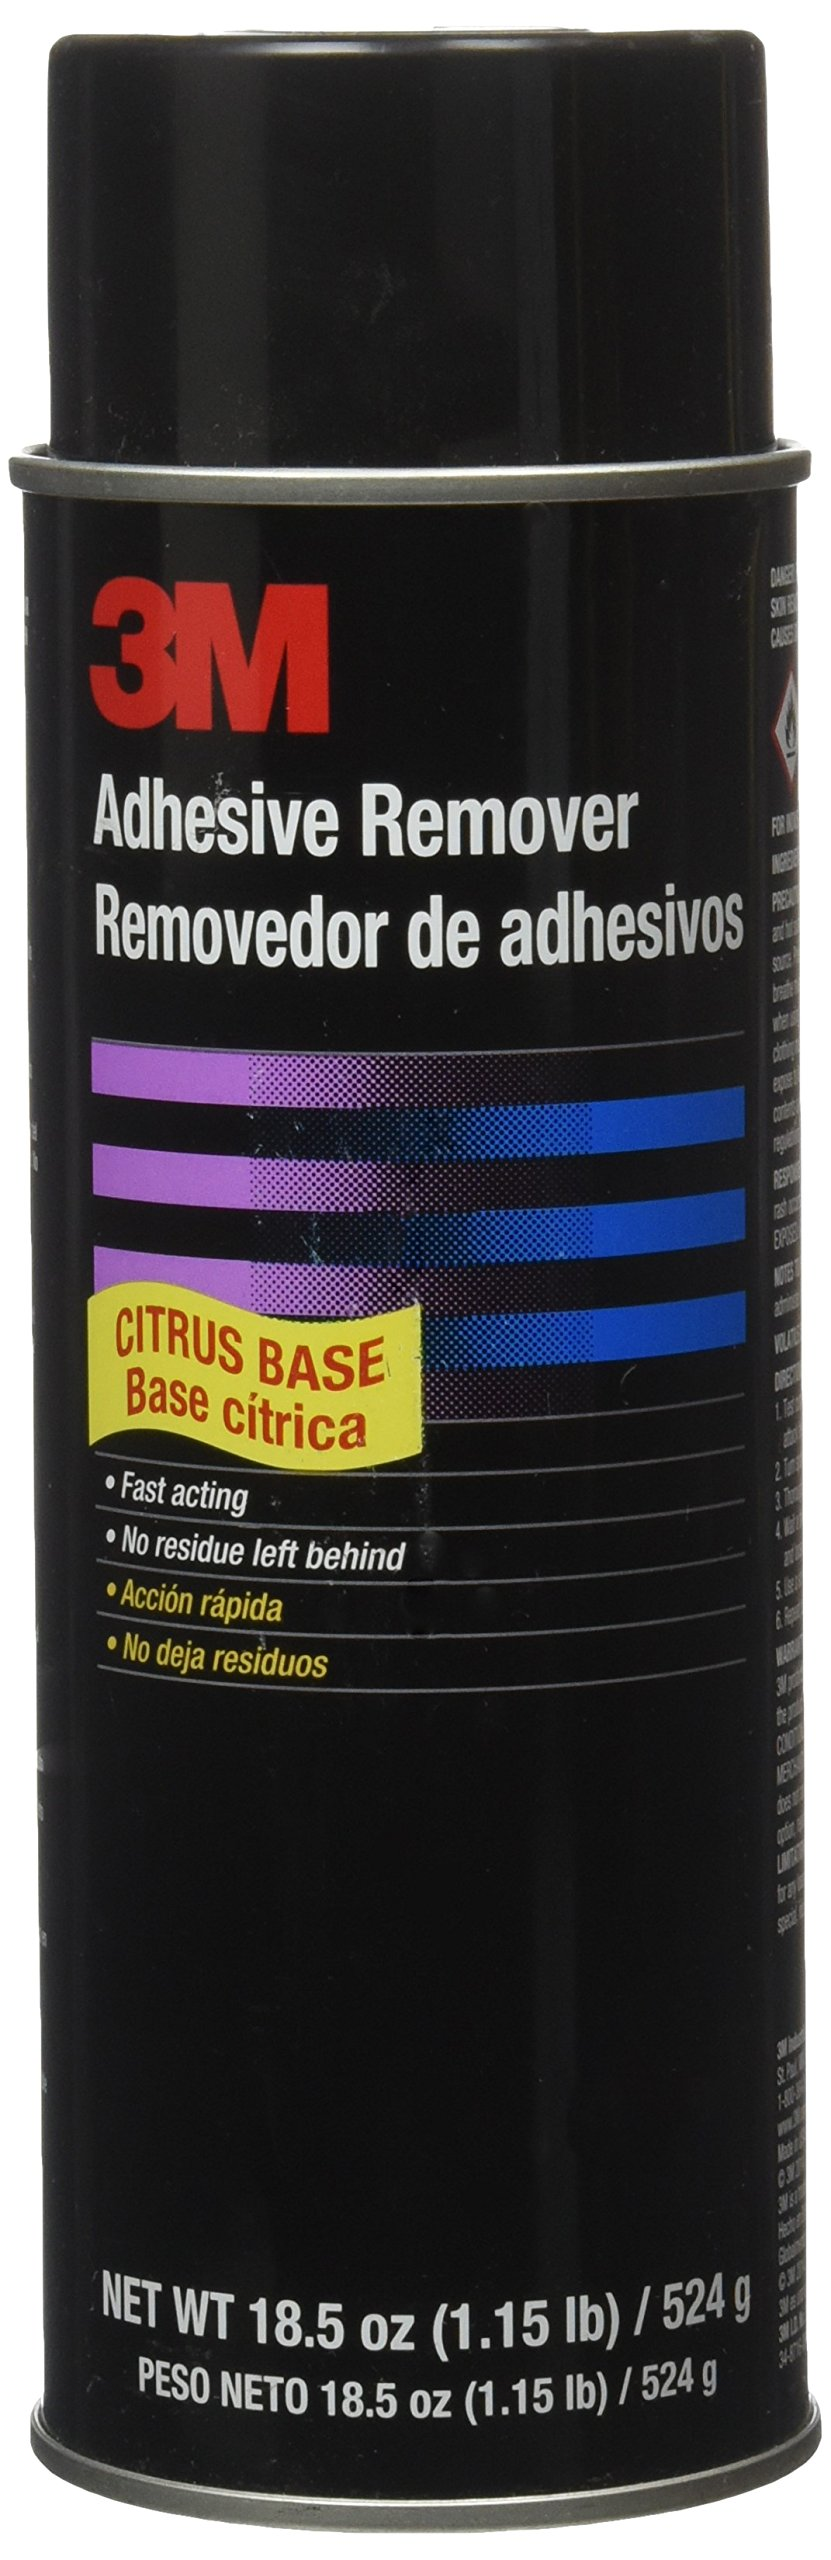 Box Partners 3M - Adhesive Remover Citrus Based 6041